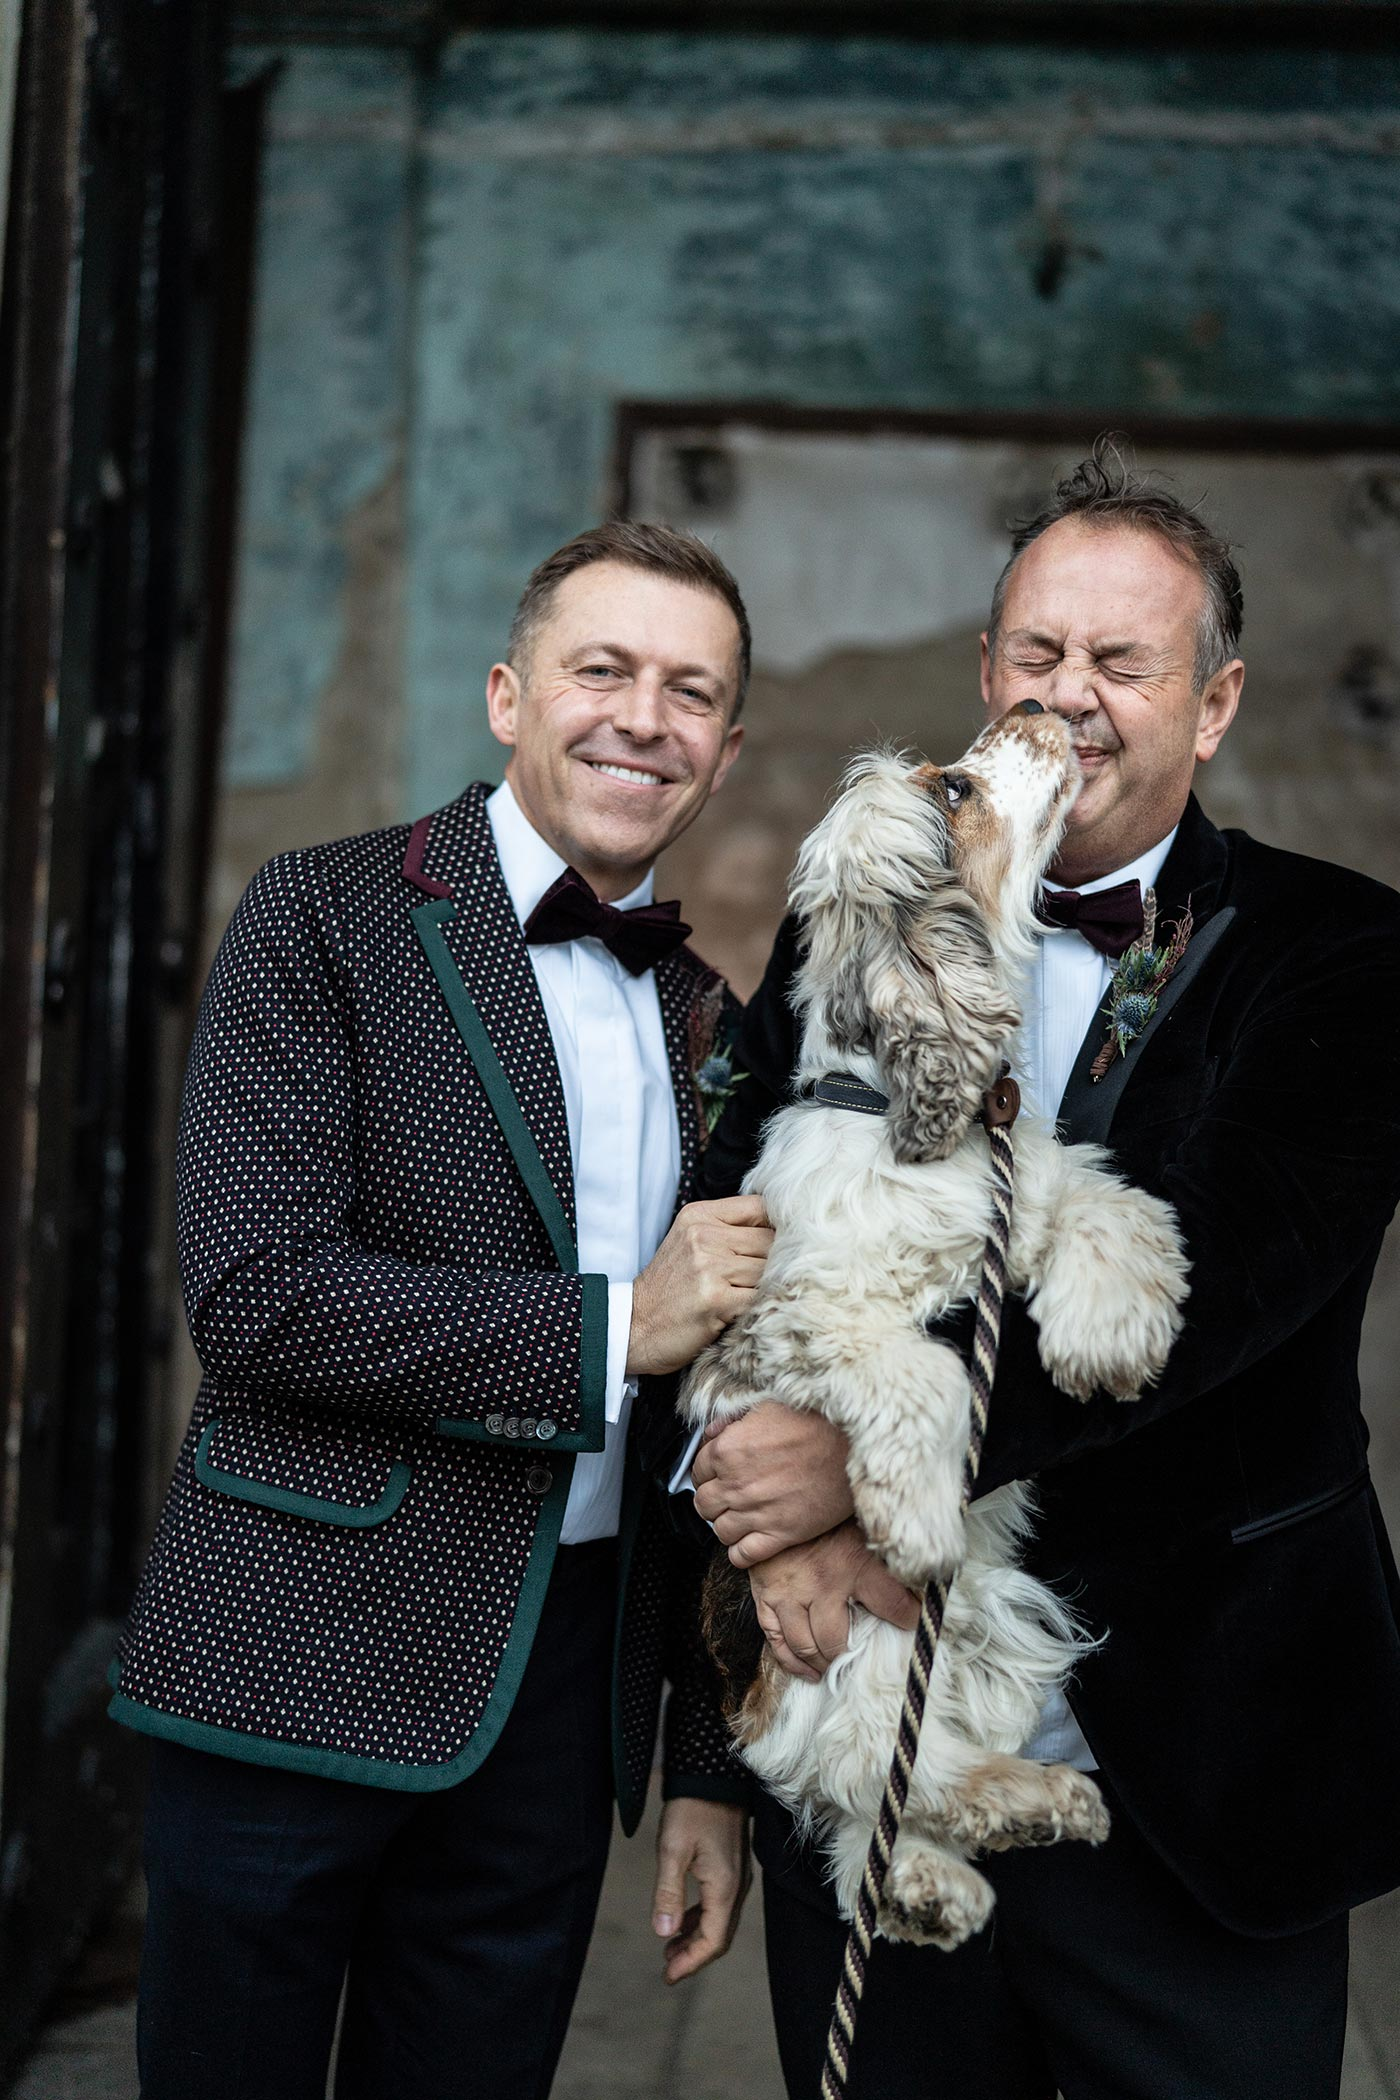 Two Grooms celebrate their wedding outside The Asylum Peckham